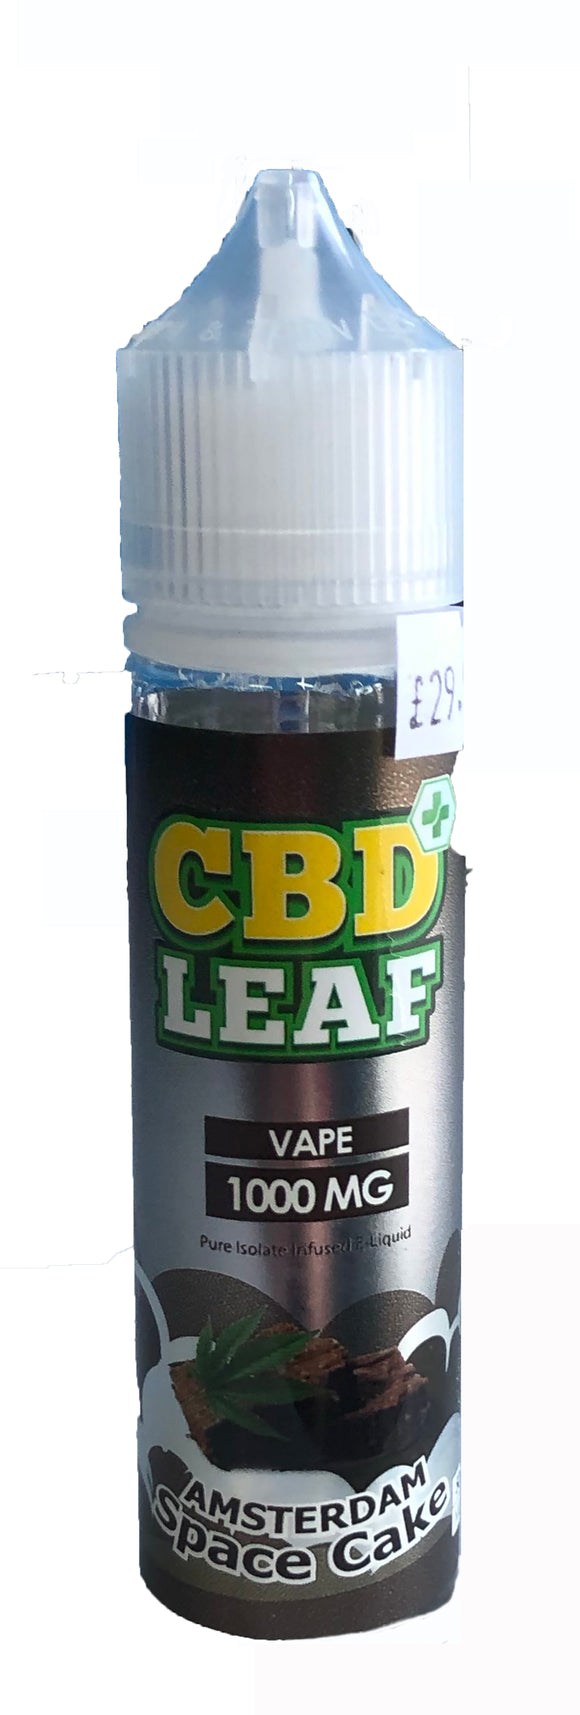 CBD Leaf Amtserdam Space Cake 50ml - 1000mg CBD Isolate by en-ex